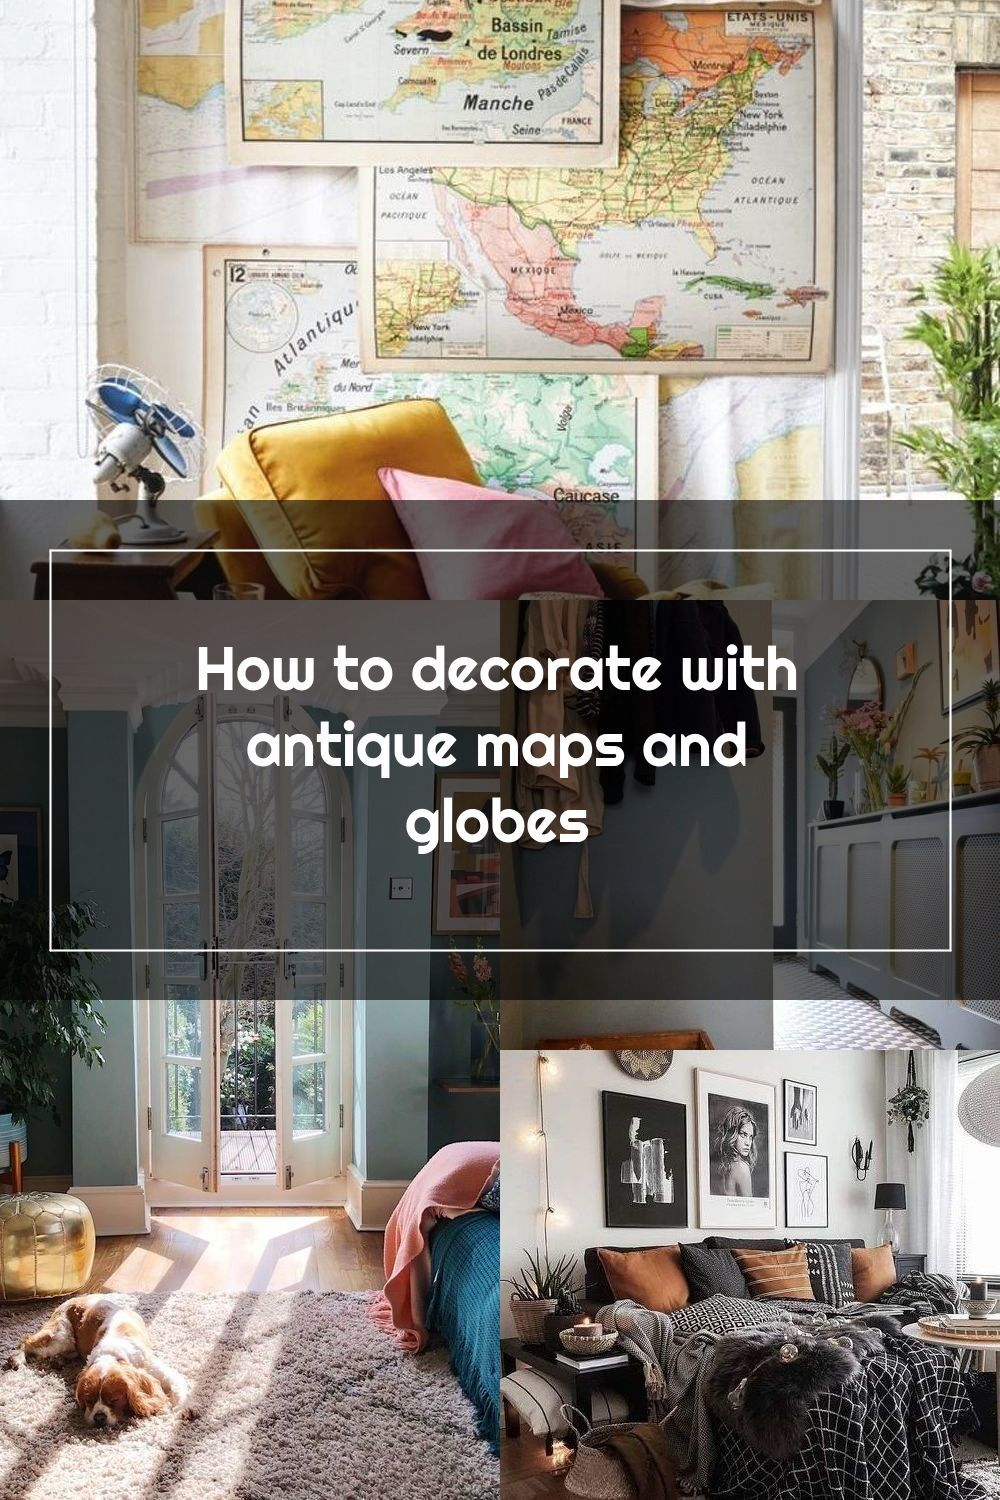 A realm of curiosities and intrigue, antique maps and globes are a hot topic and can create an exciting eclectic wanderlust room. #eclecticdecor #eclecticinterirs #eclecticrooms #decoratingwithmaps #wanderlustdecor